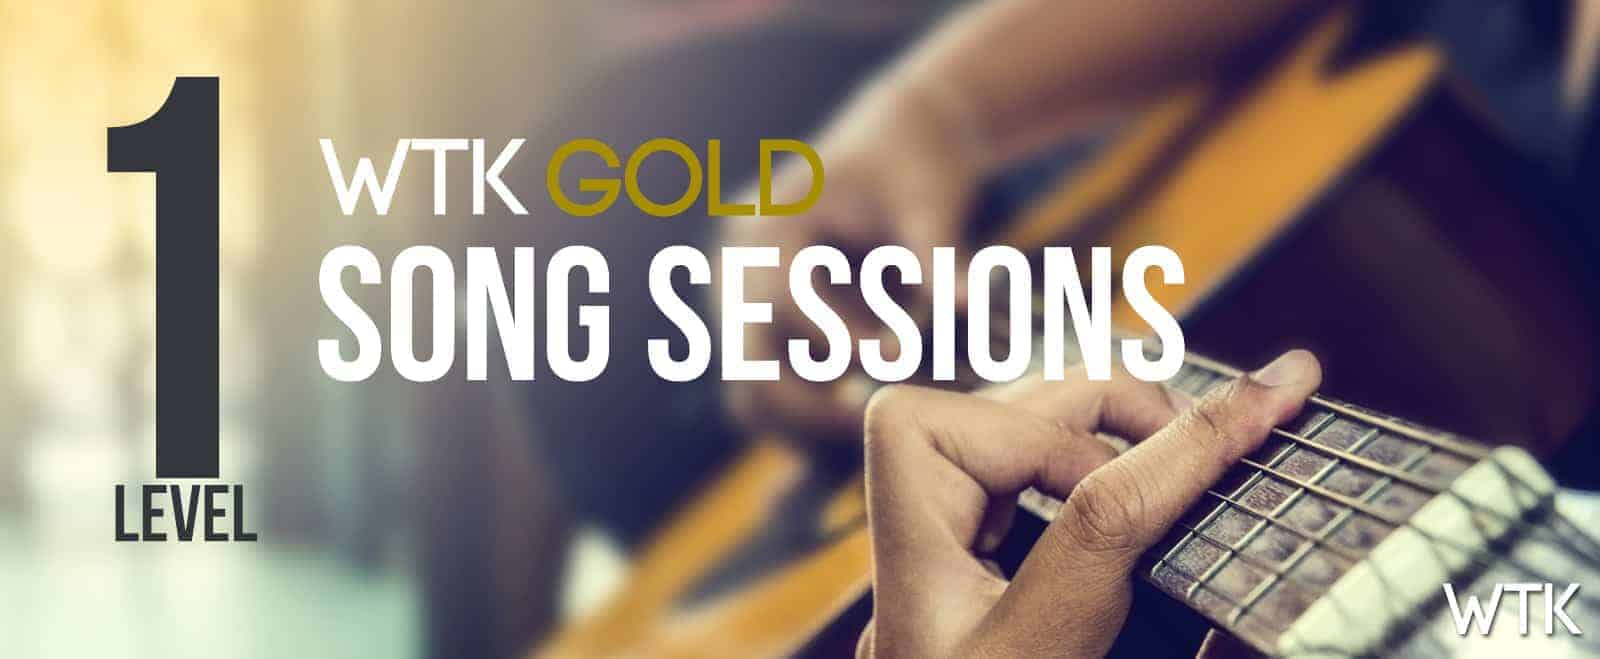 WTK GOLD Song Sessions Level 1